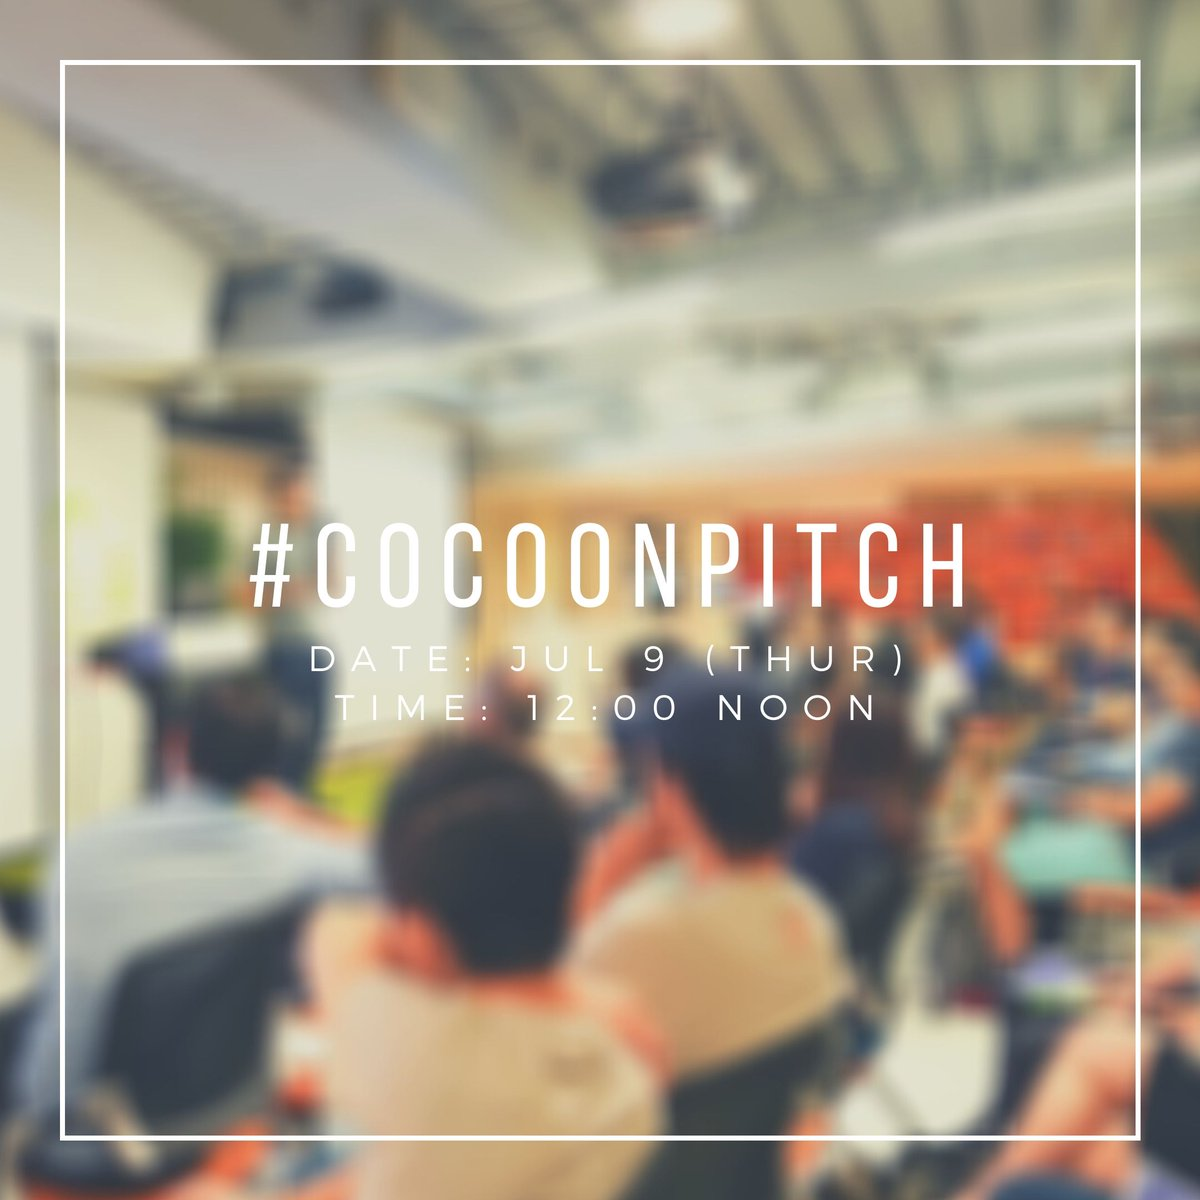 Are you curious about the future trend of investment?   Why not join our #CoCoonpitch to get a glimpse?   Go sign up right away!  RSVP:    #pitch #startup #hkstartup #entrepreneurship #investors #professionals #eventbrite #hkcocoon #cocoonpitch2020 #hk ... https://t.co/YY4GM7d9zB https://t.co/X6JrWsfMsb